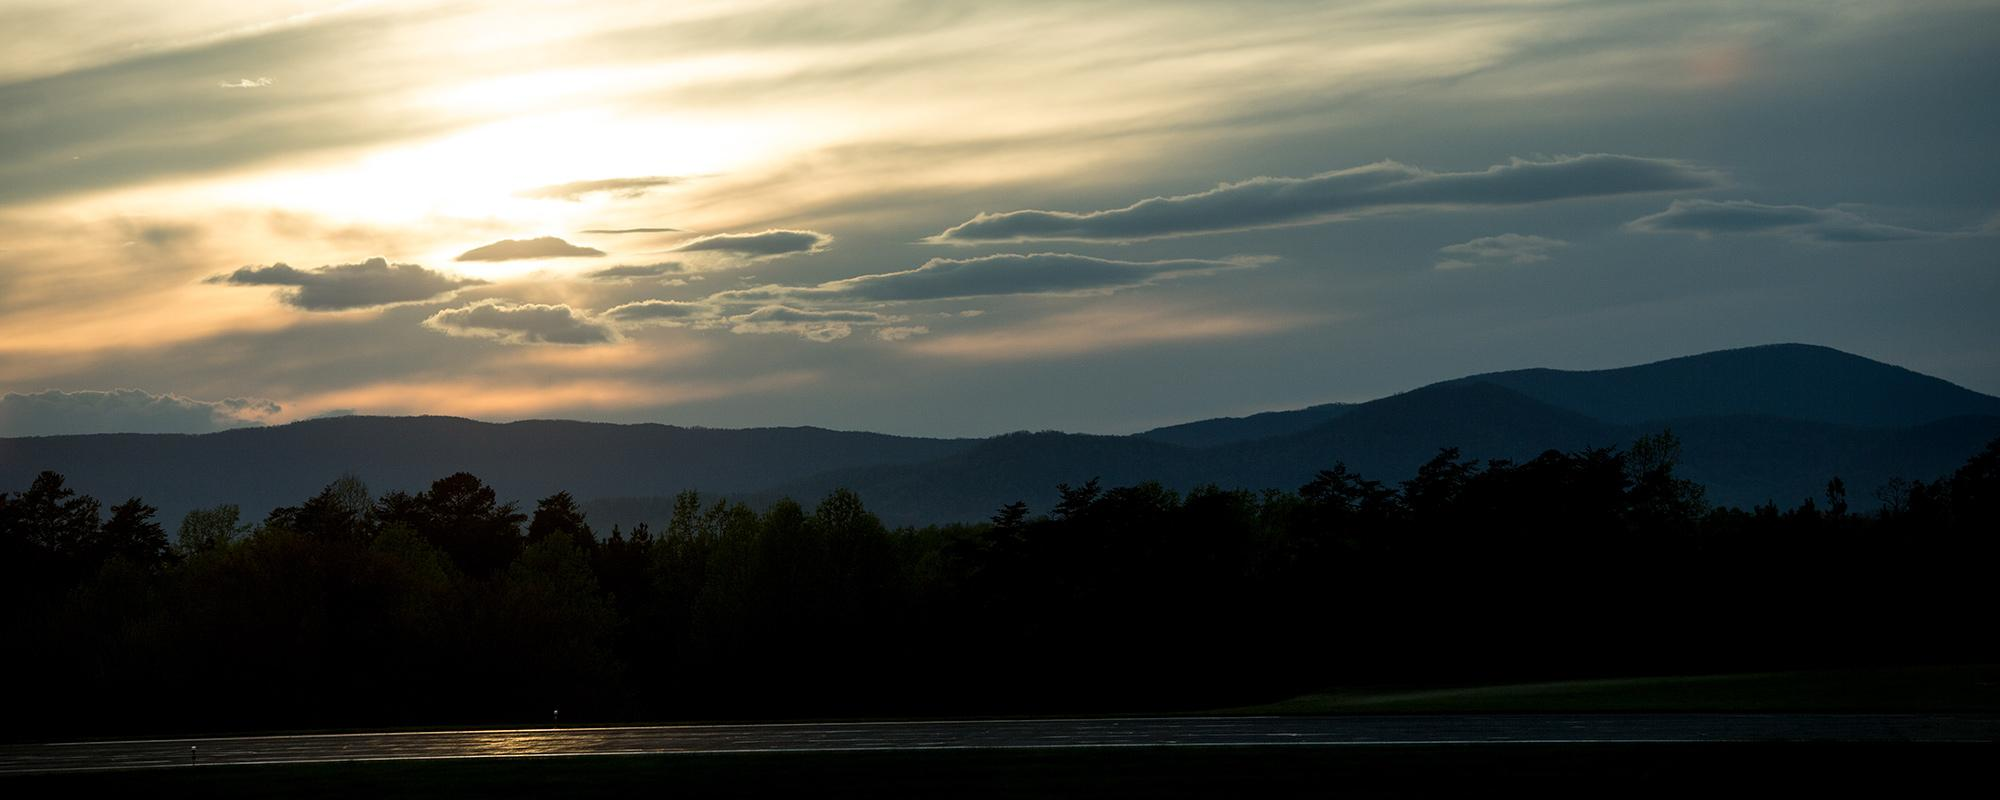 An image of the Blue Ridge Mountains viewed from the Charlottesville Airport